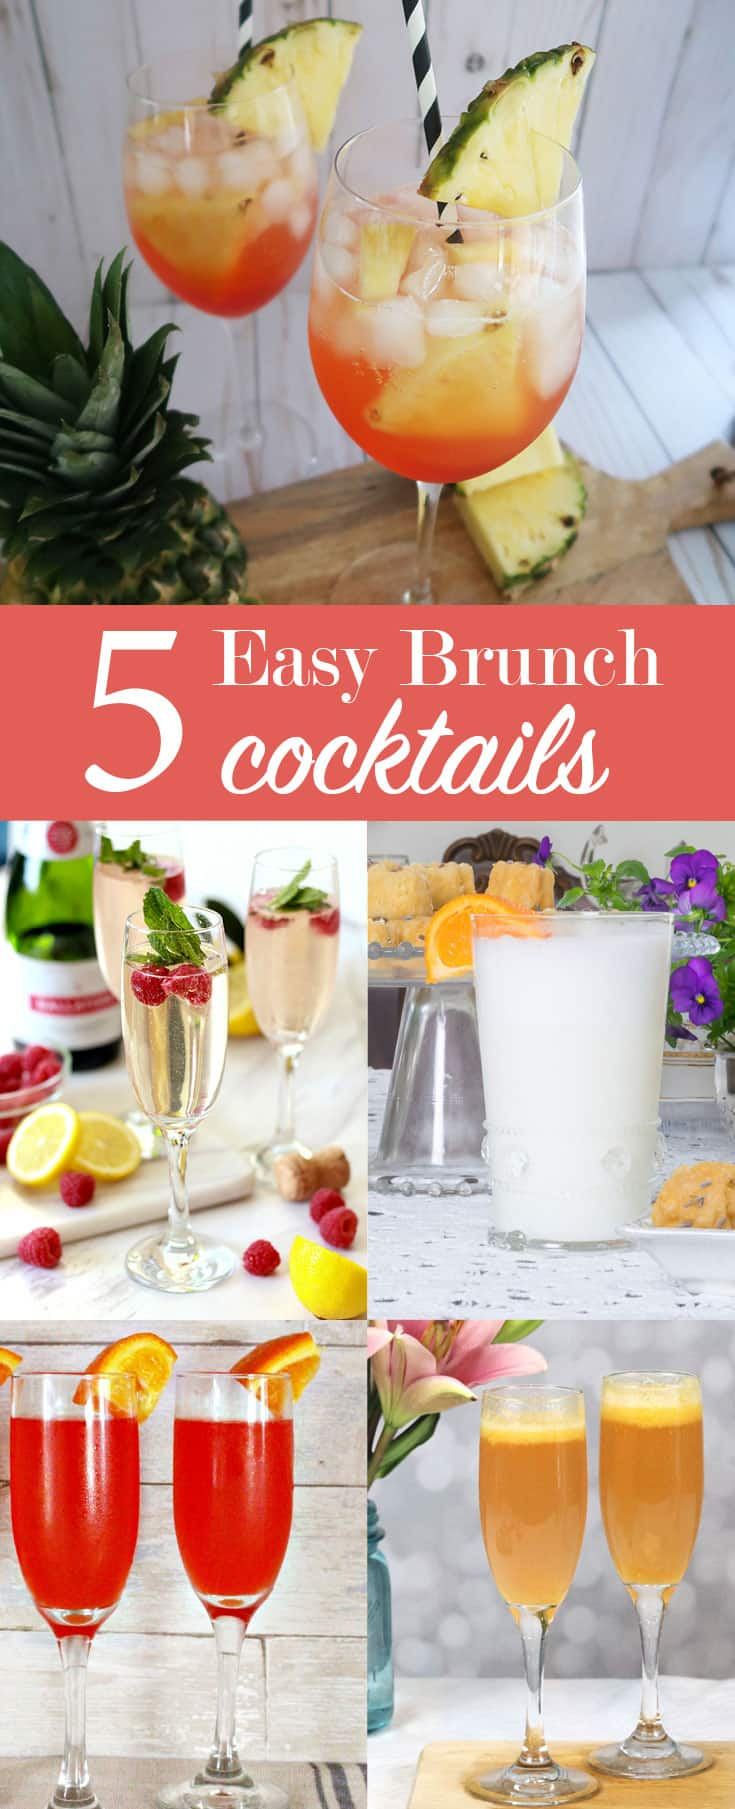 5 brunch cocktail recipes